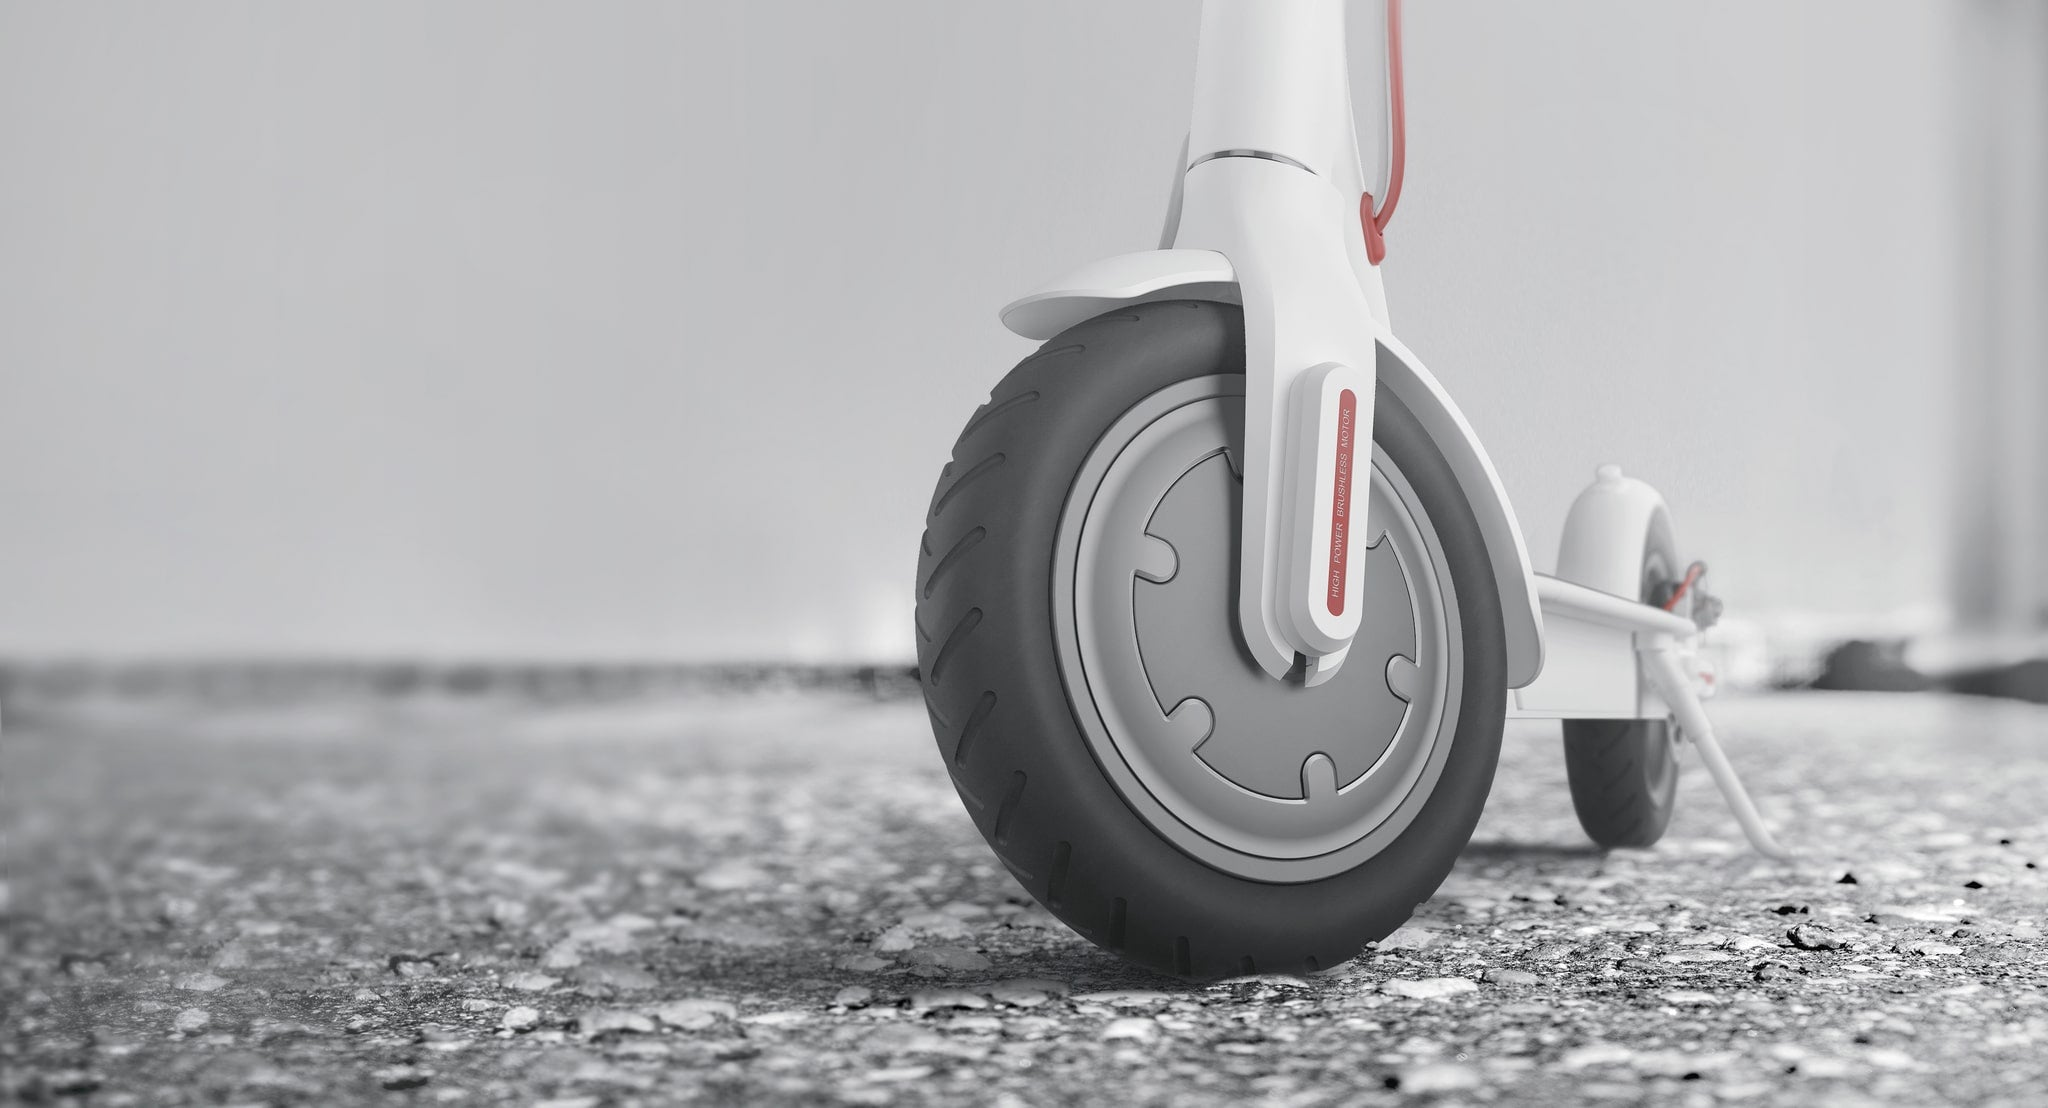 xiaomi m365 electric scooter tyres